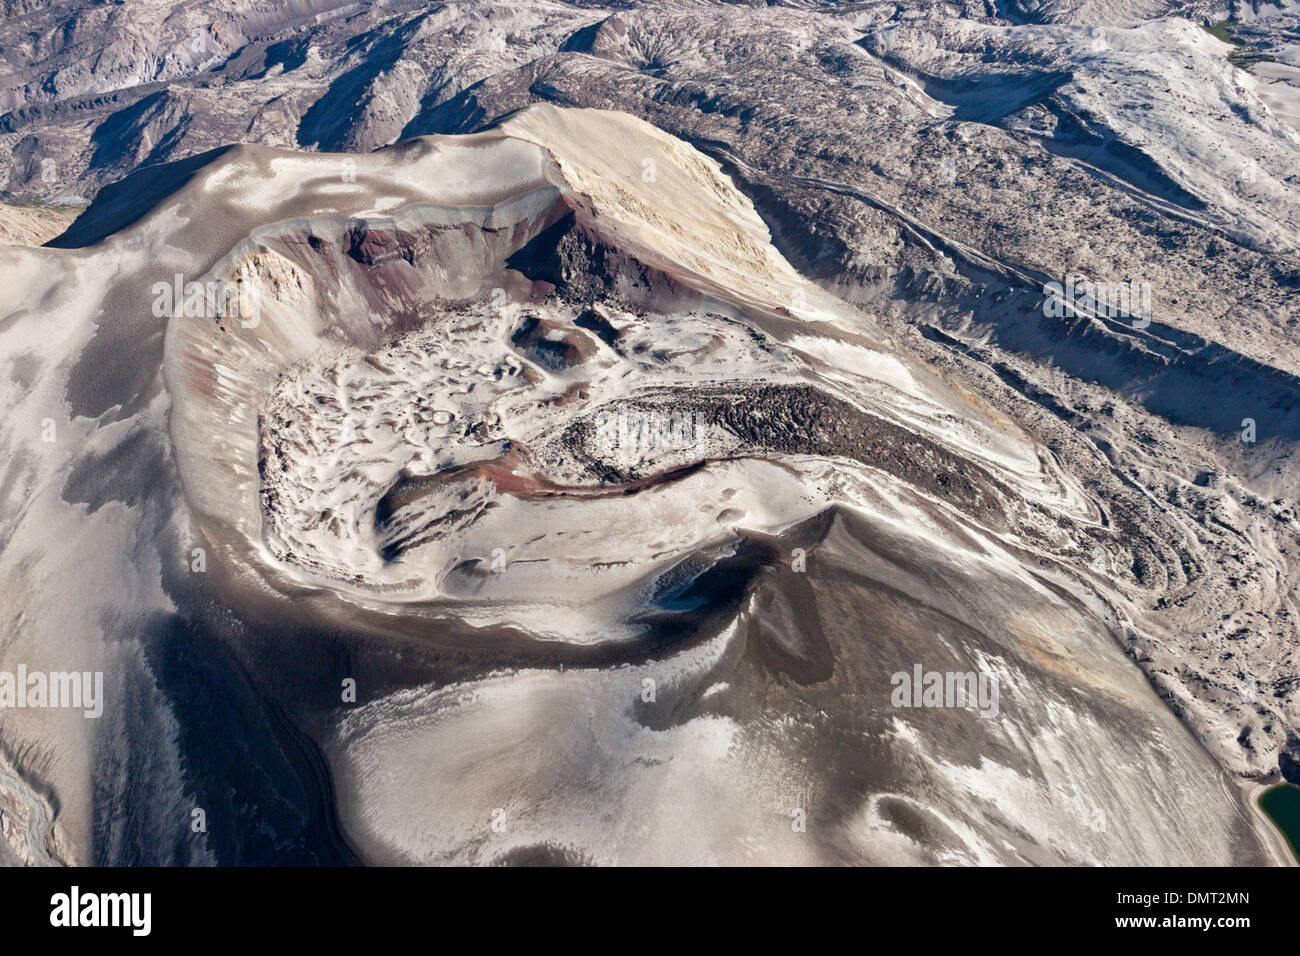 volcano Andes mountains Chile desolate colorful barren vents lava flow montanas Cero Azul Descabazado Volcano Stock Photo